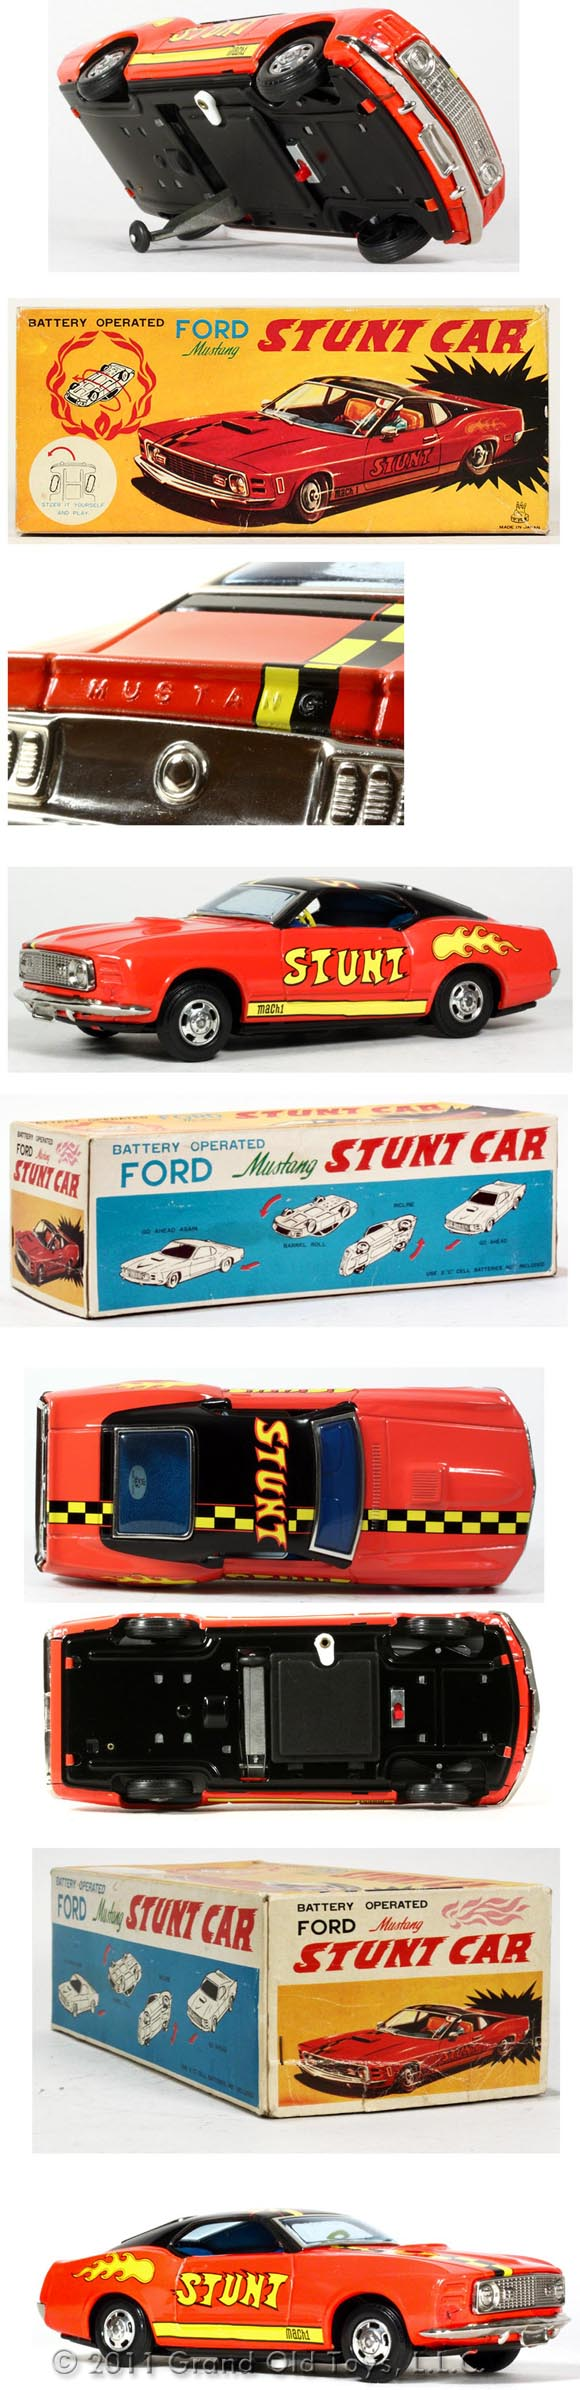 1970 TPS Ford Mustang Stunt Car In Original Box